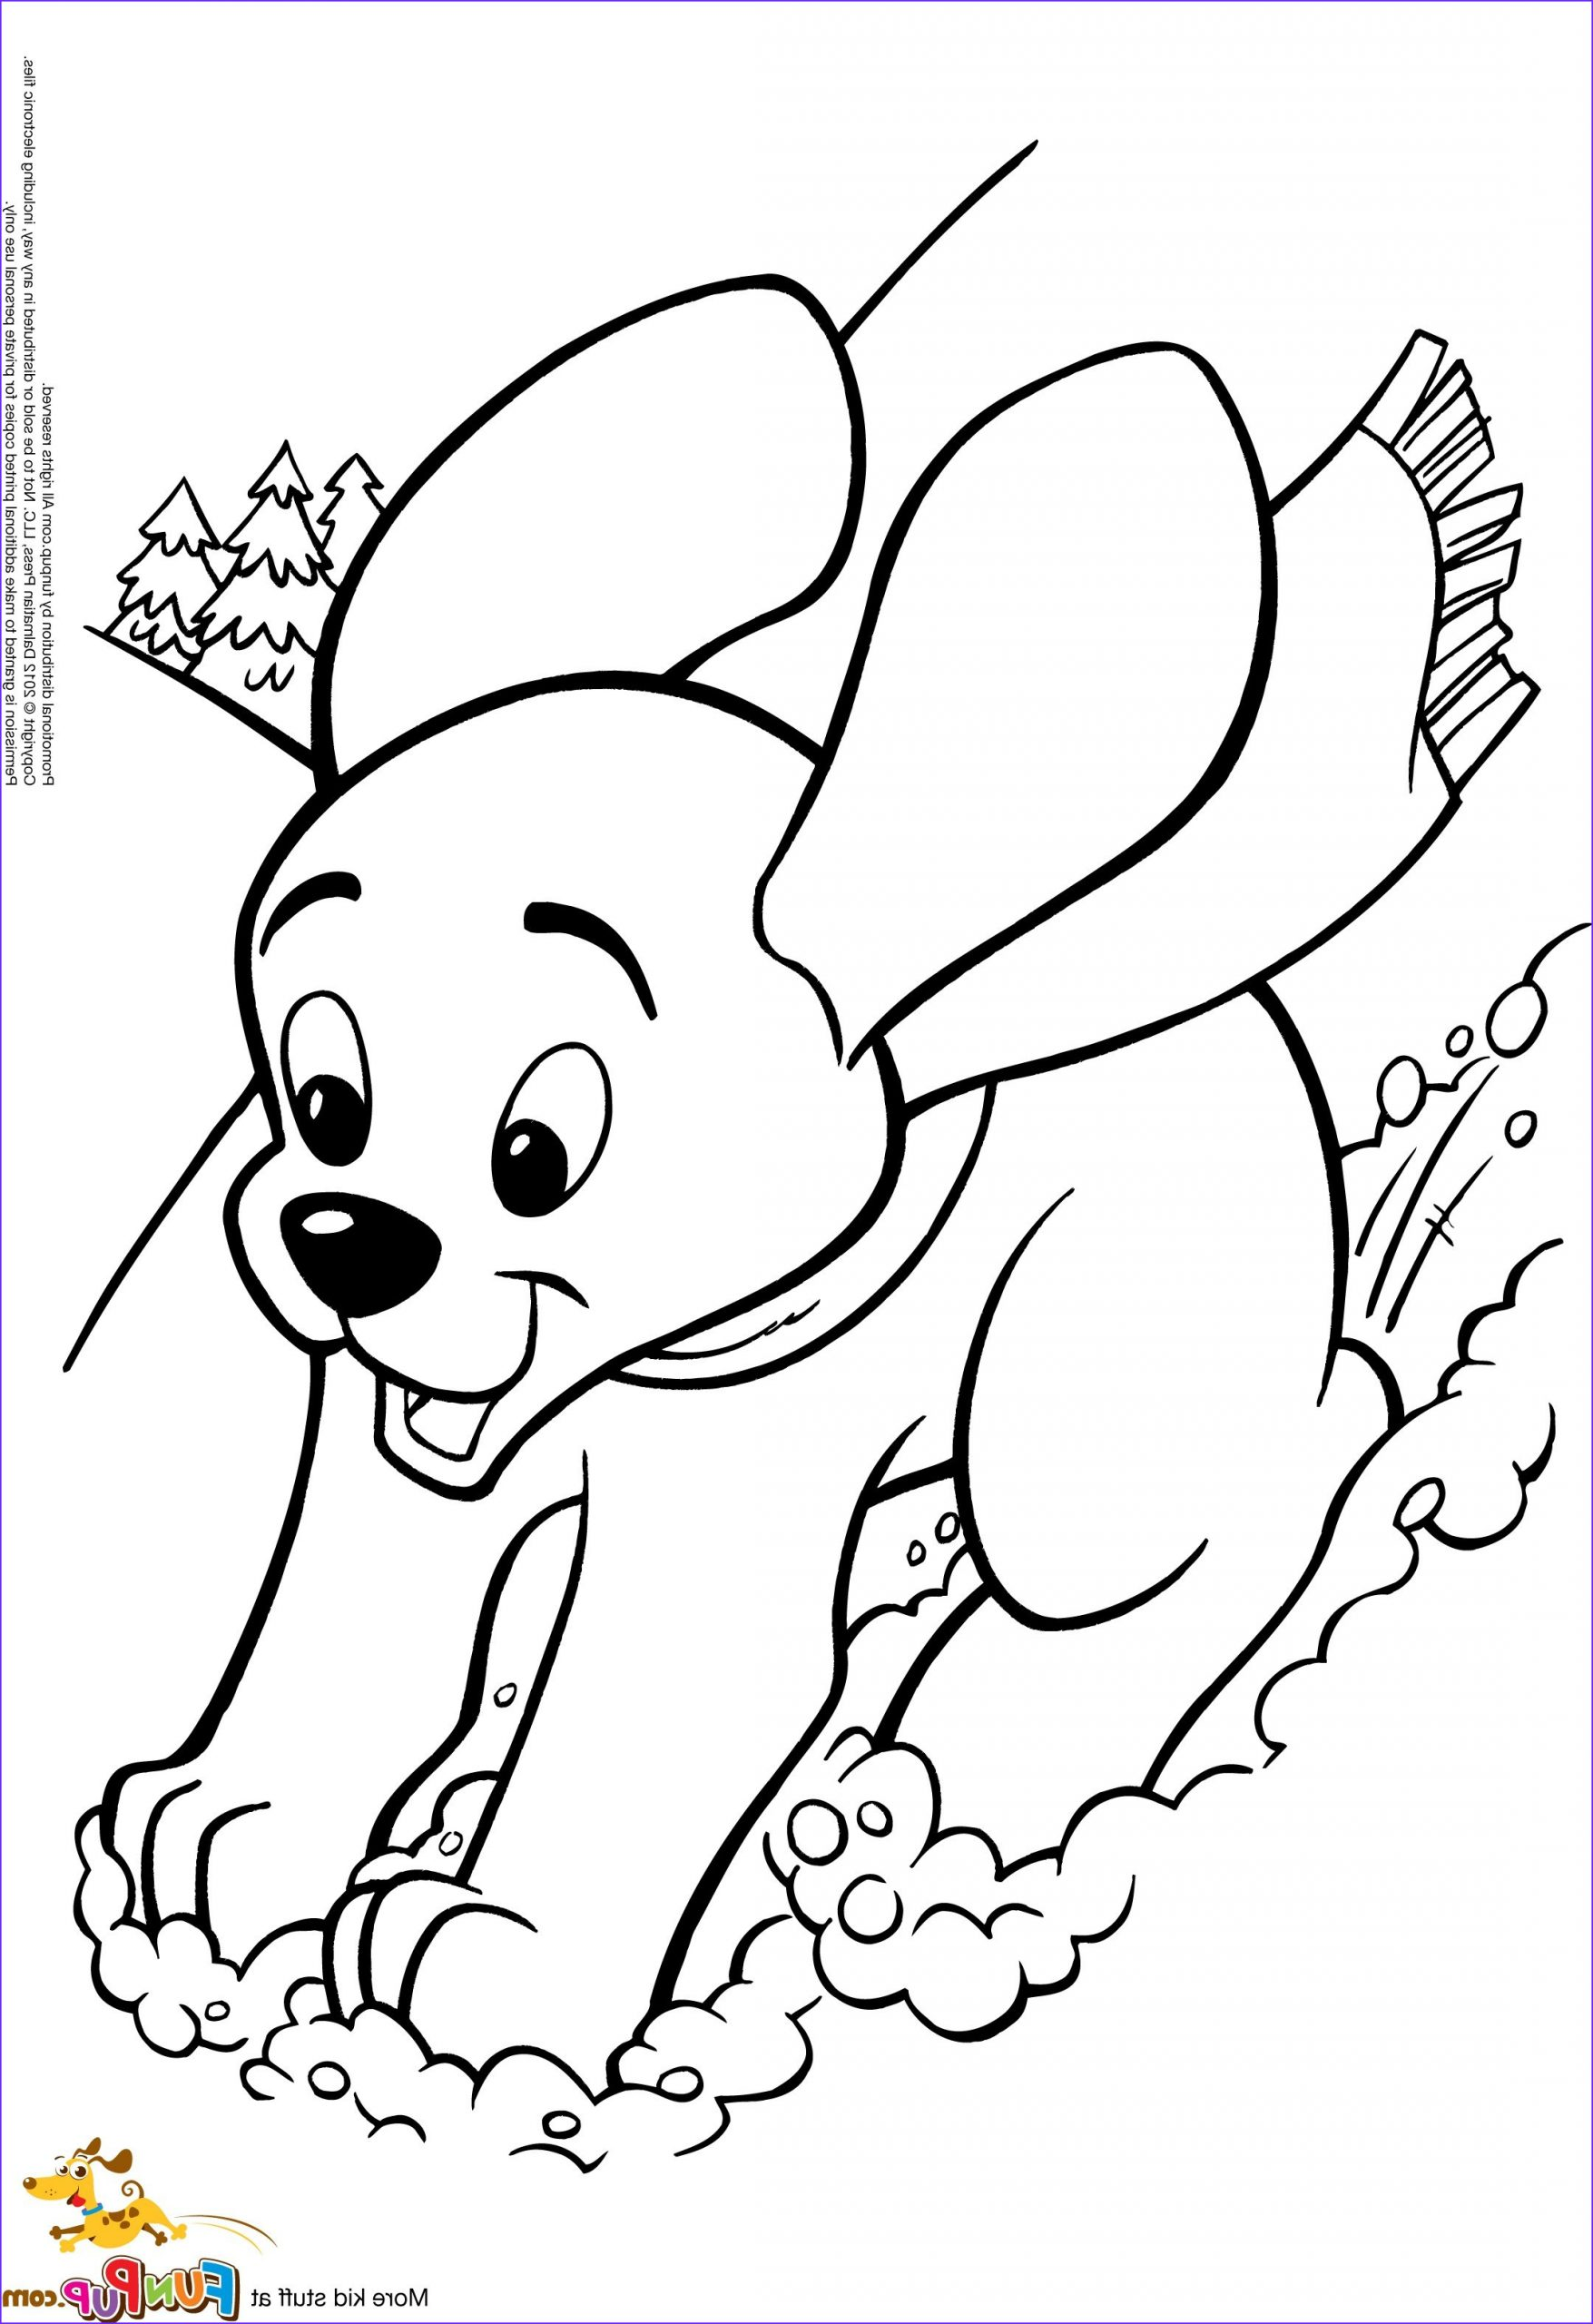 Puppy Coloring Page for Kids Awesome Photos Cute Dog Coloring Pages for Kids at Getcolorings